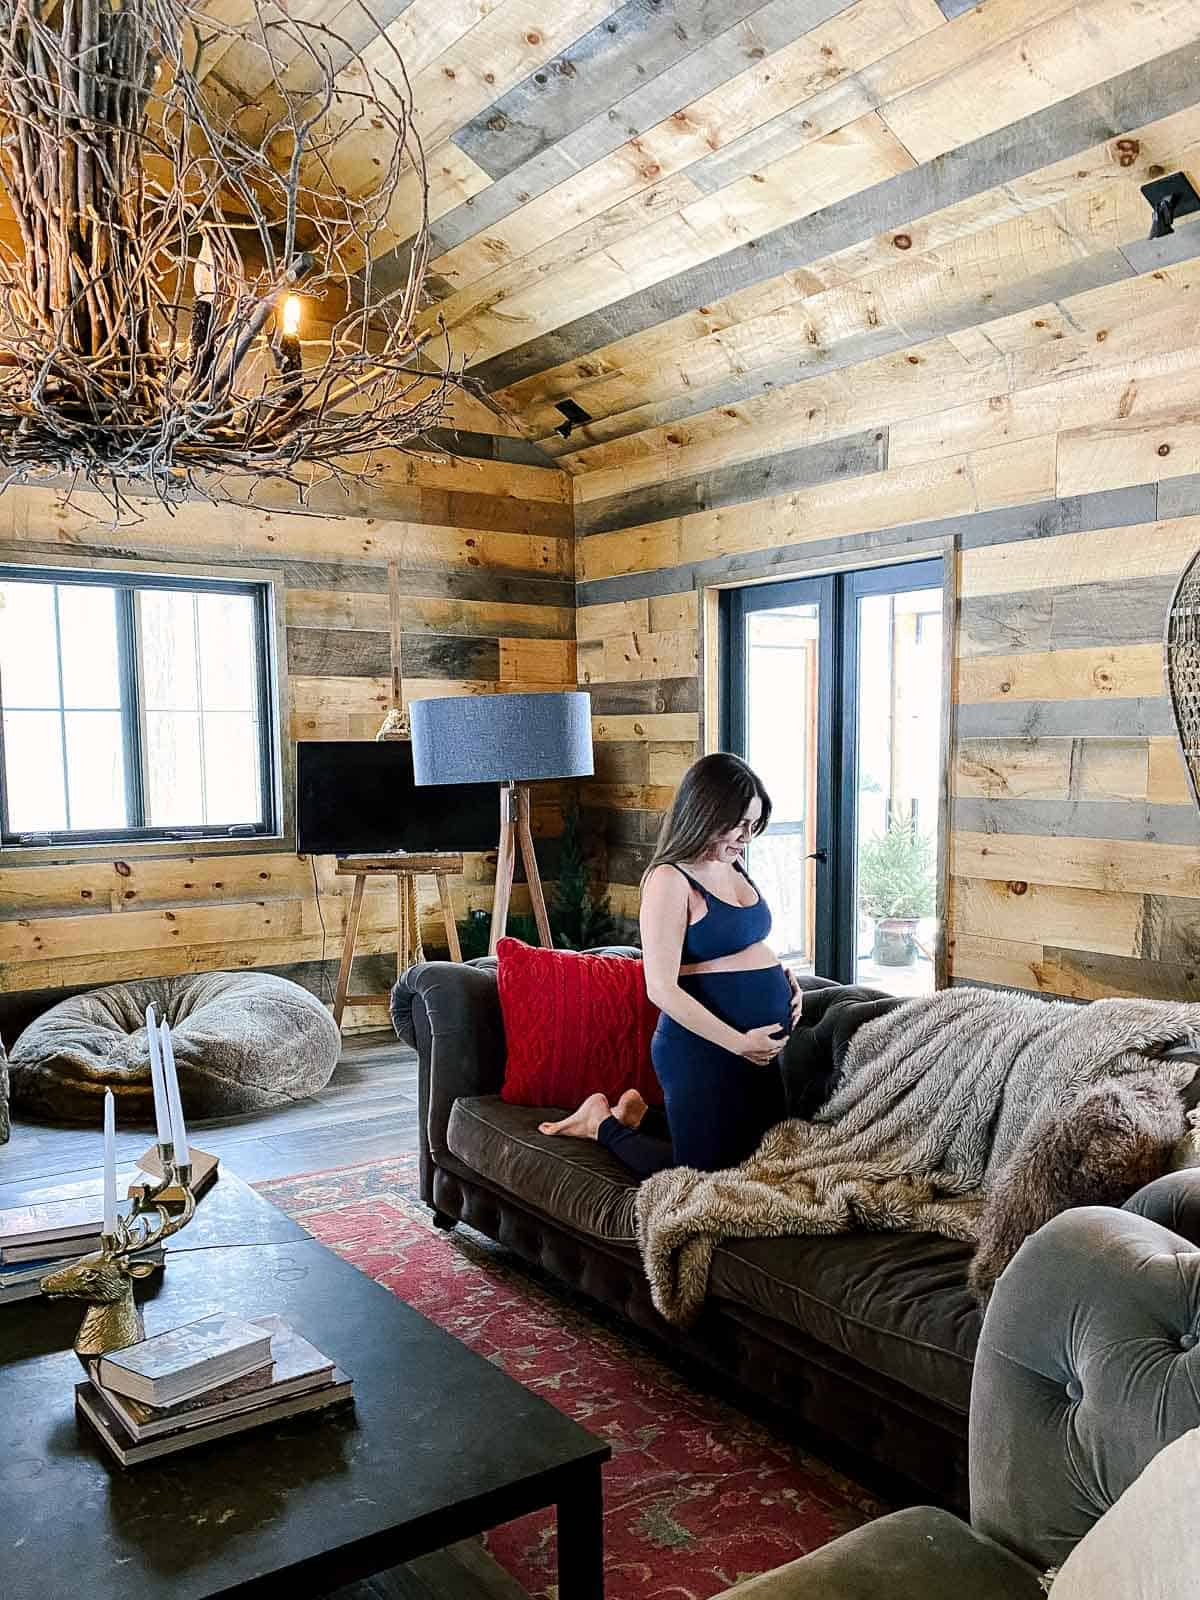 pregnant woman in yoga clothes on couch in cabin with wood walls and rustic chandelier